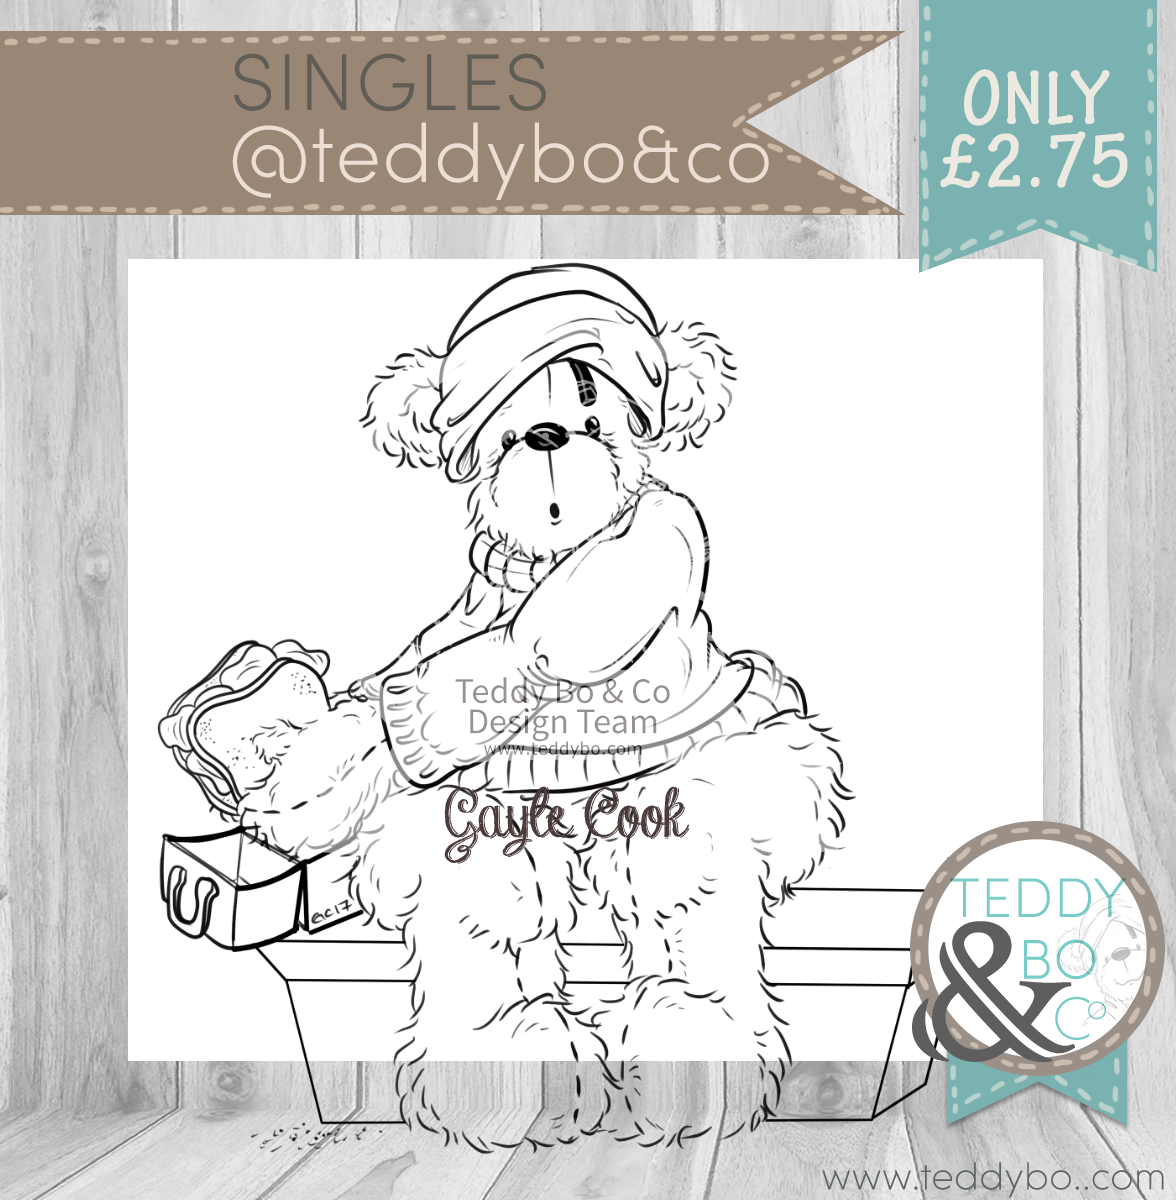 JULY_TEDDYBO_05_02.png